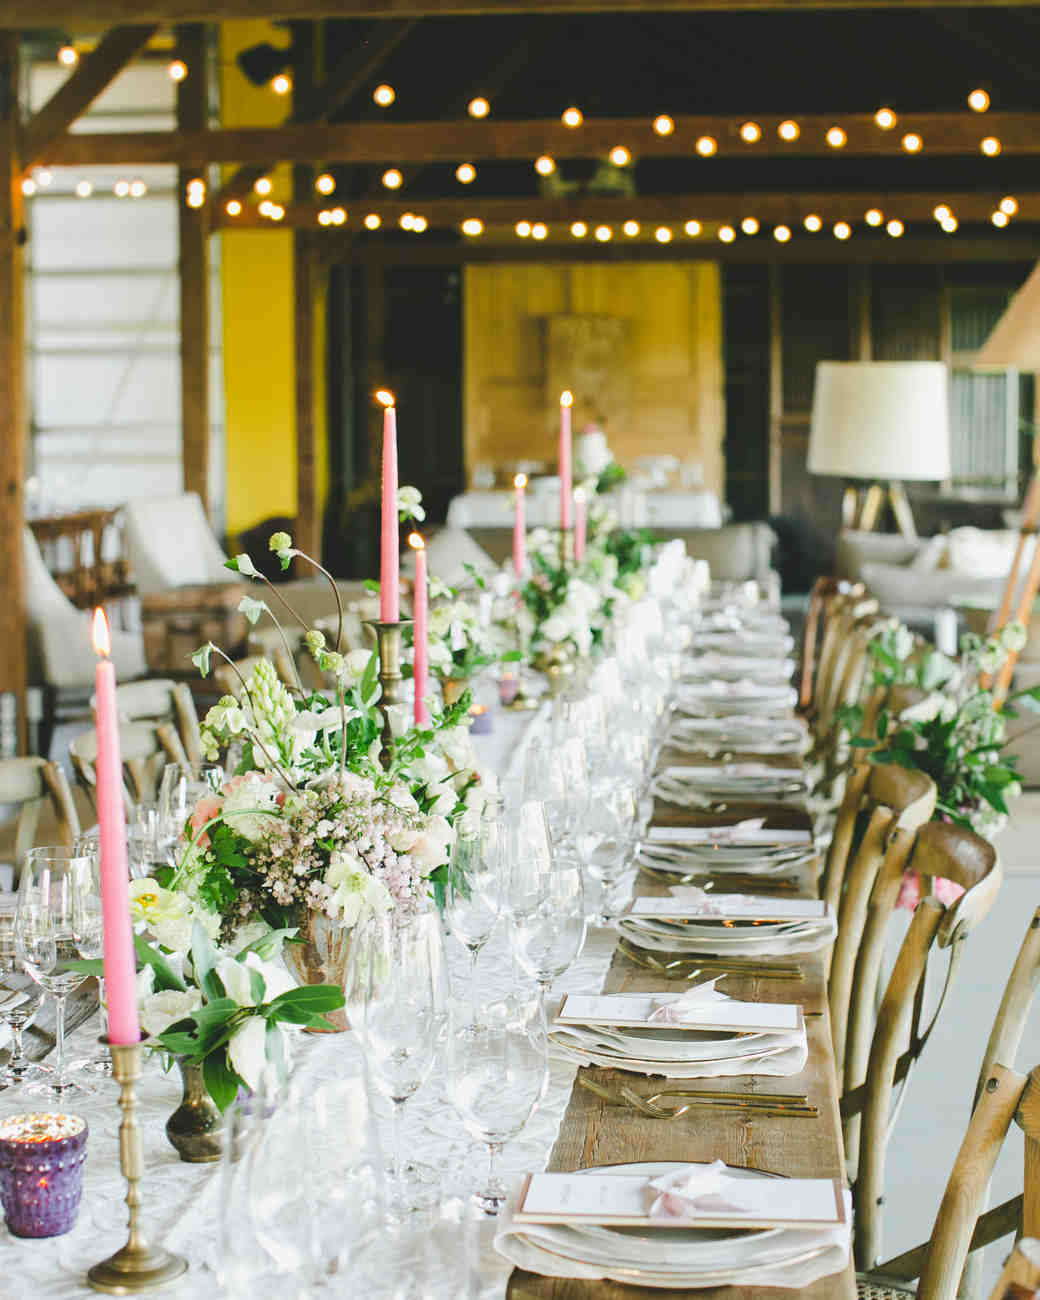 Spring Design Ideas: 23 Candle Centerpieces That Will Light Up Your Reception